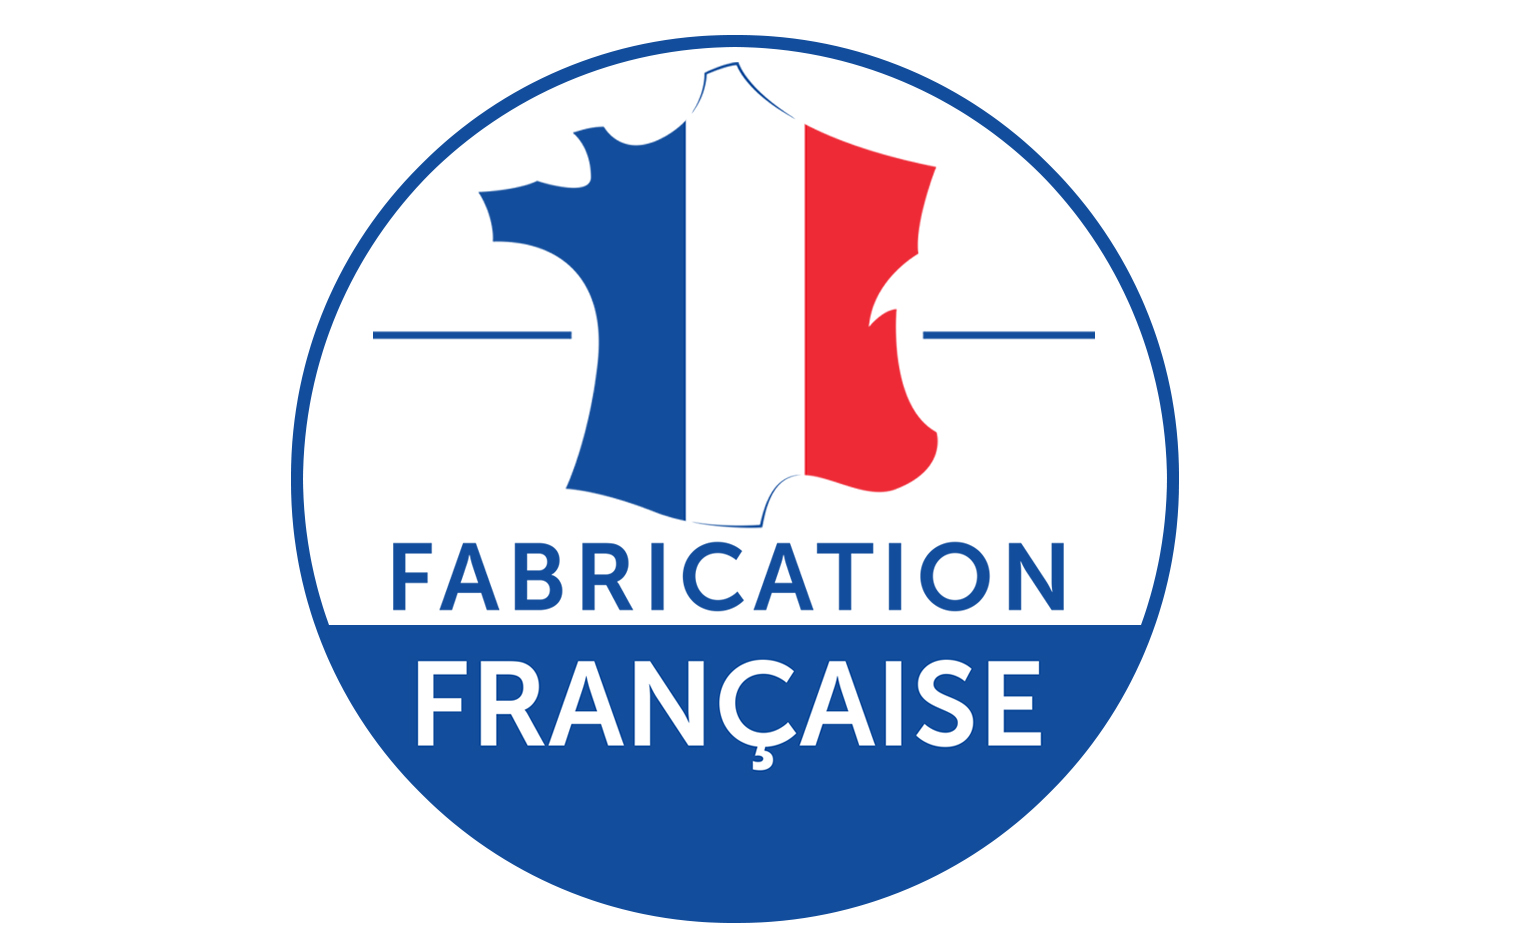 Fabrication française made in France